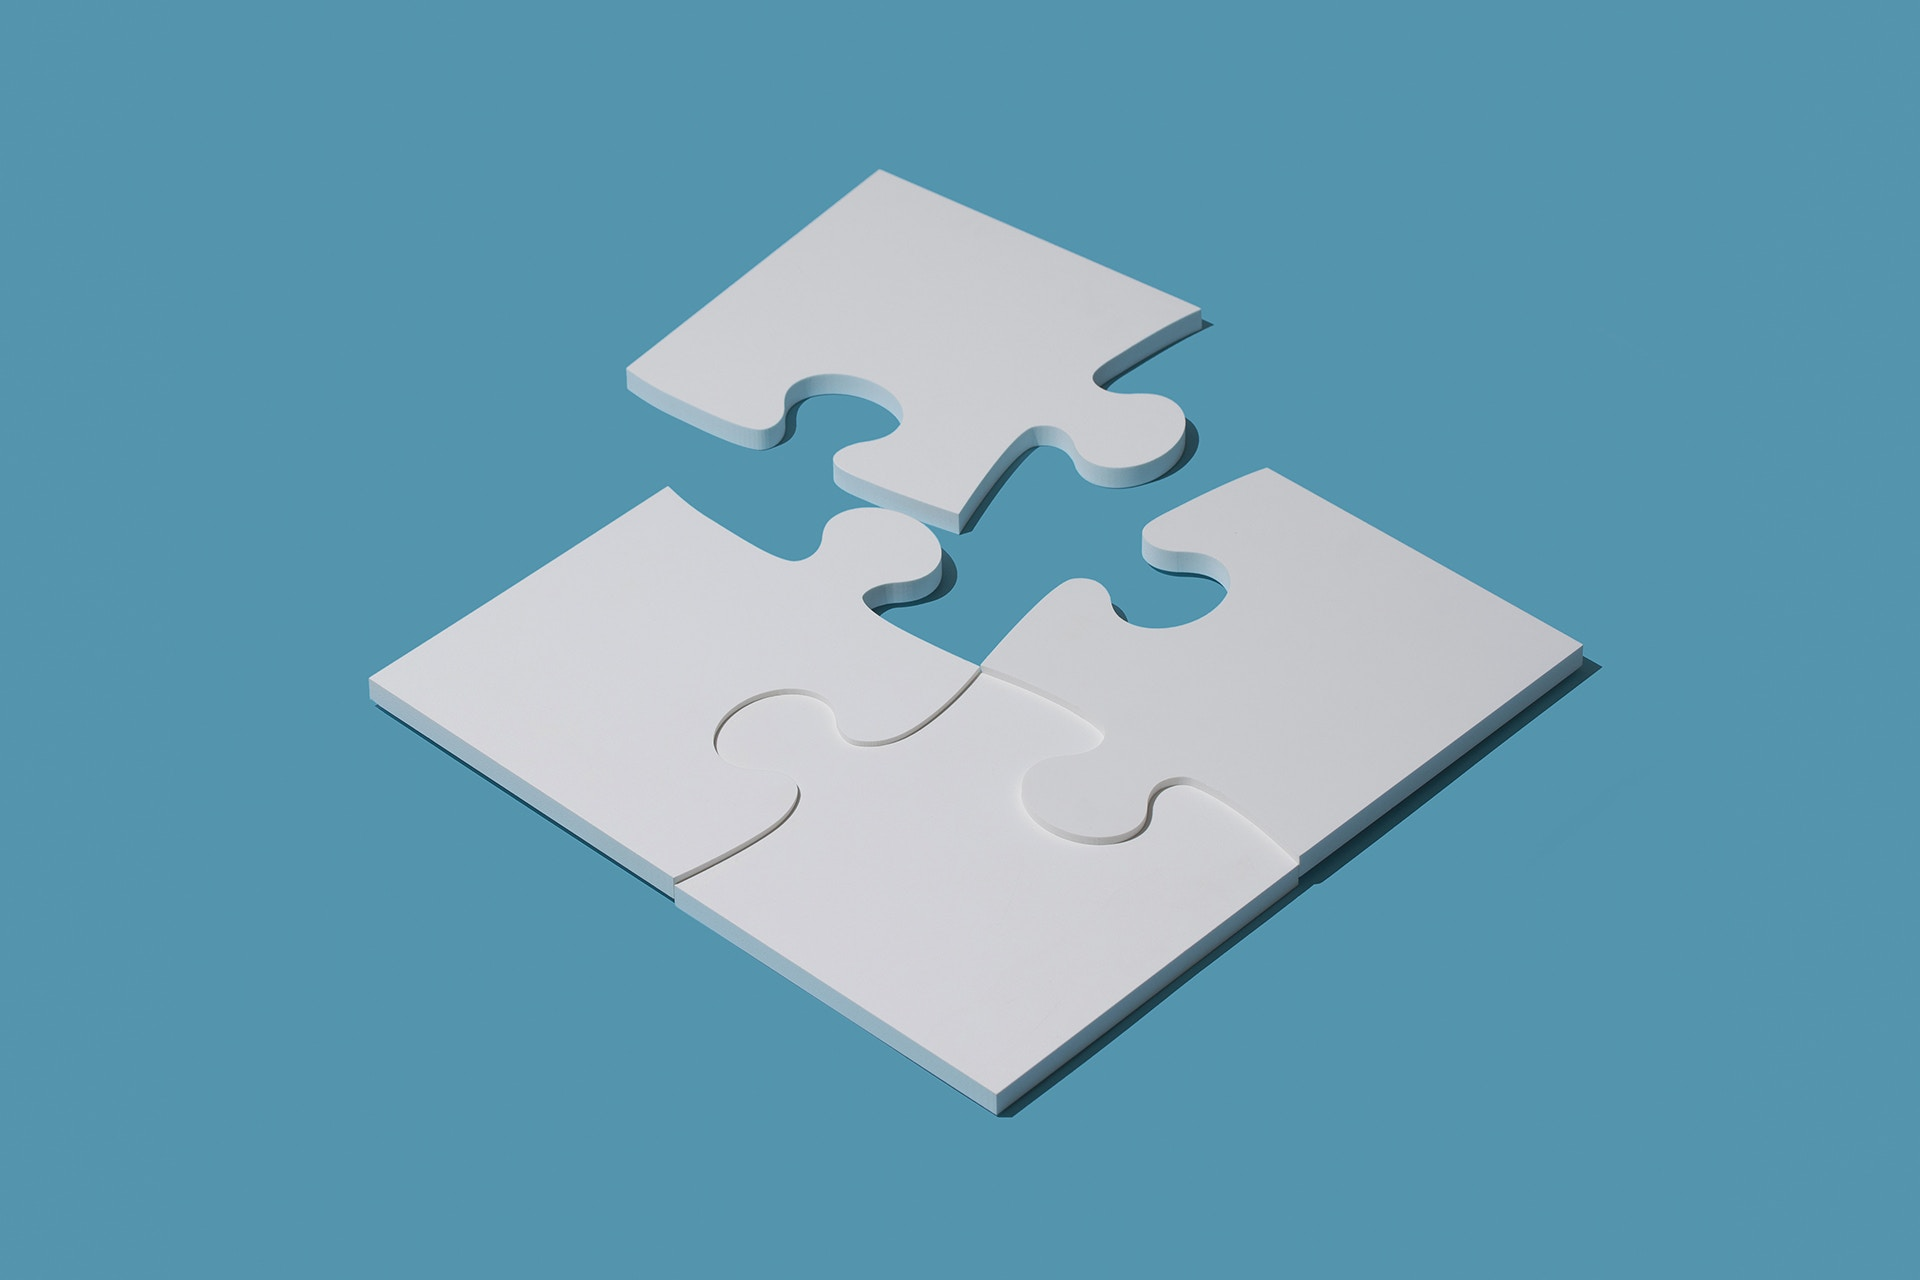 A 4-piece puzzle in the shape of a square with one corner not yet connected on a blue background. This image is being used a thumbnail for a blog onmarketing segementation